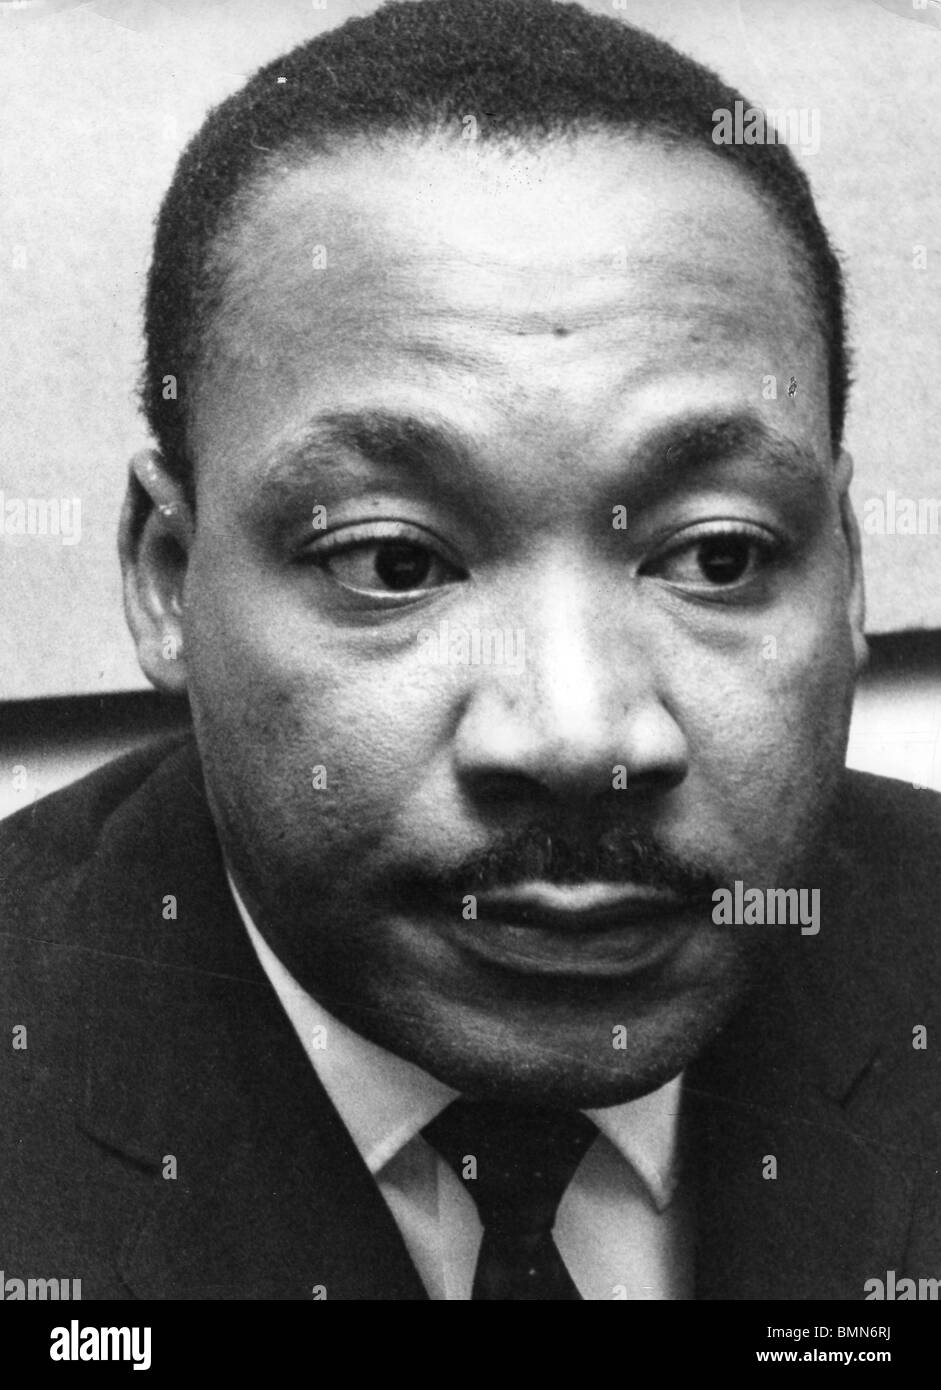 MARTIN LUTHER KING - US civil rights leader (1929-1968) - Stock Image